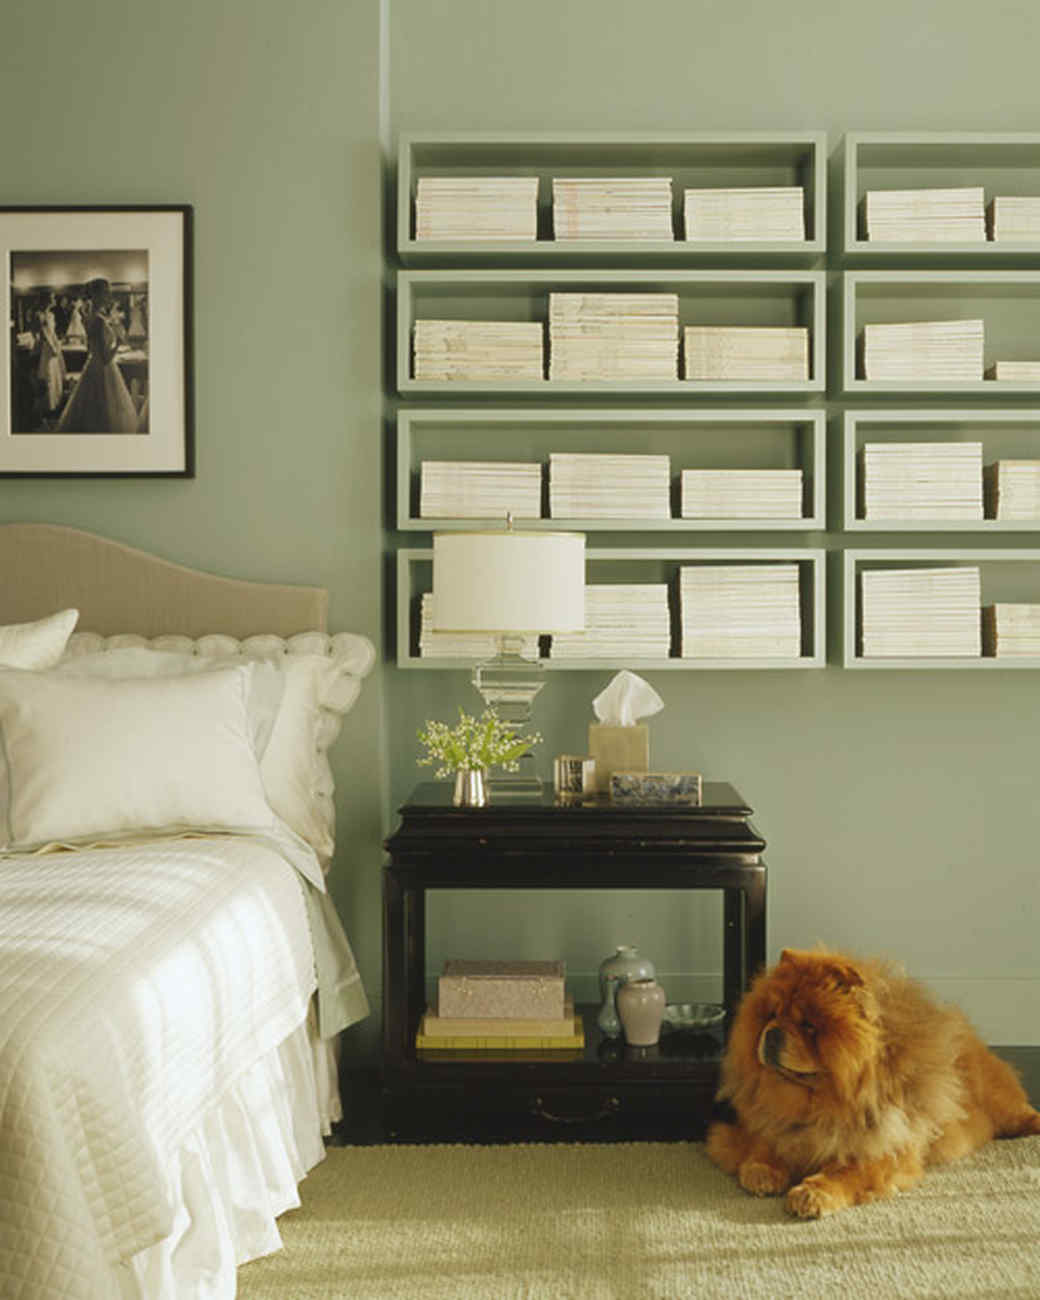 Rooms With Green Walls green rooms | martha stewart